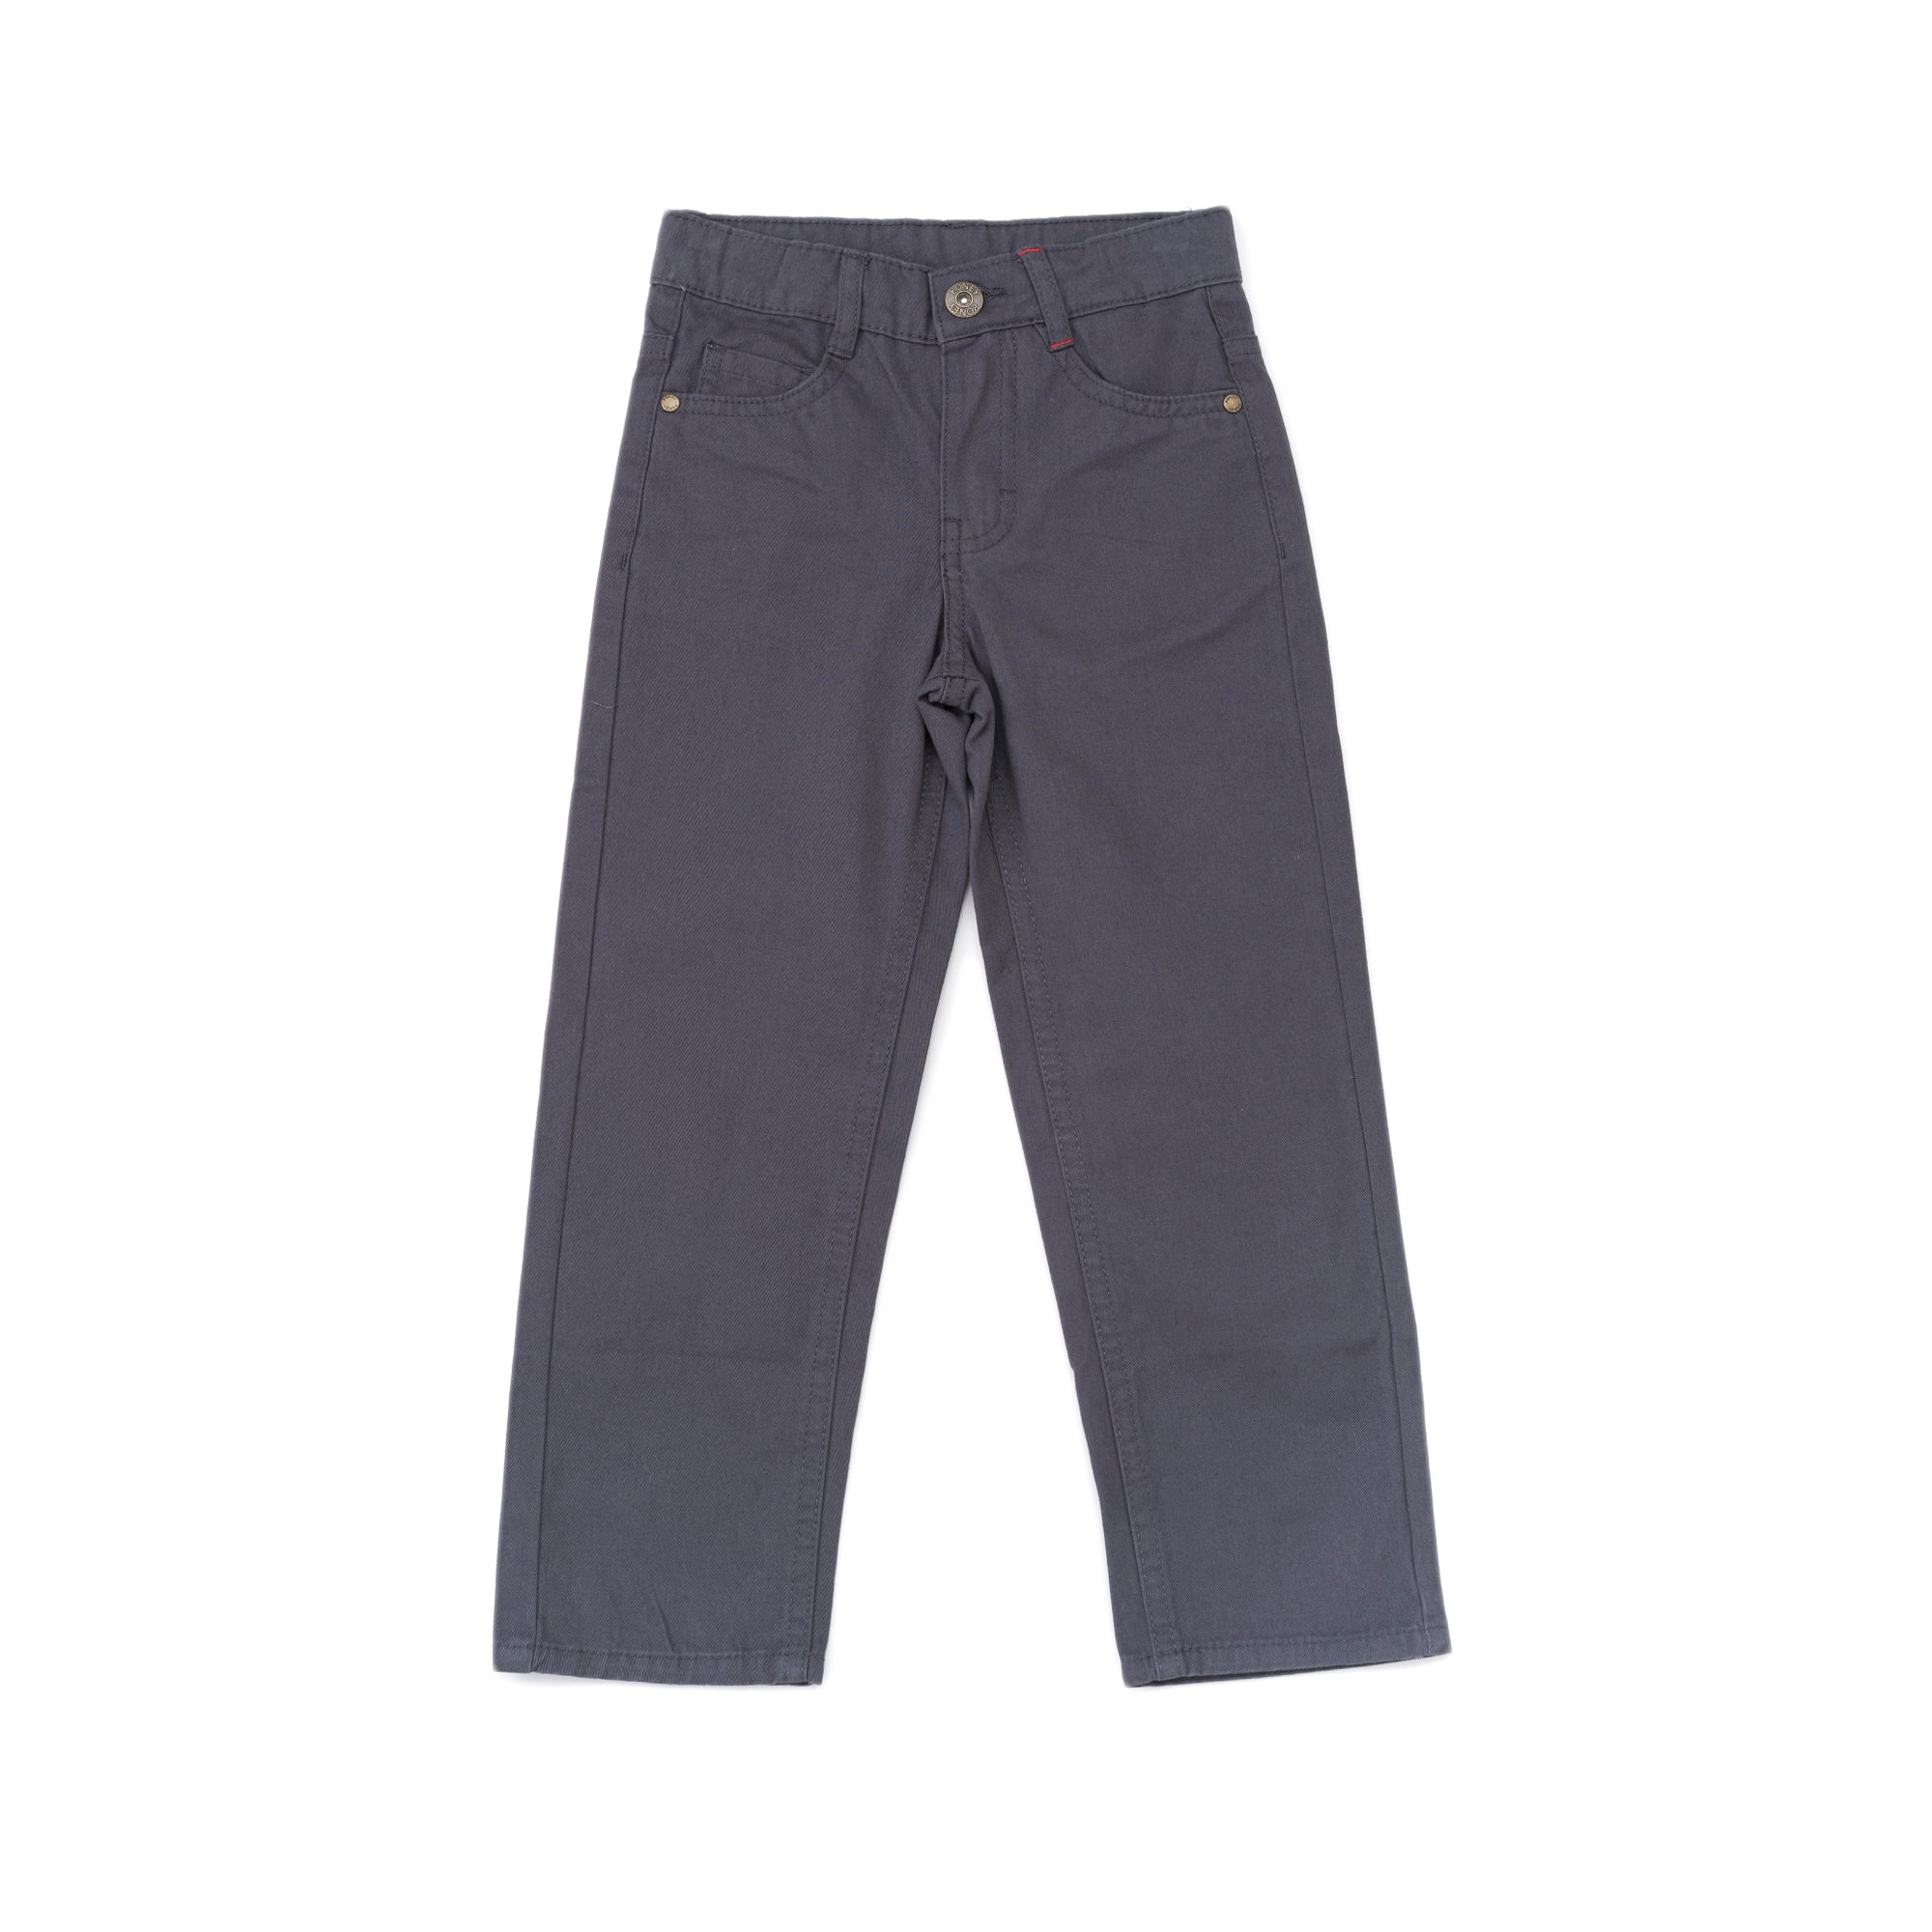 Poney Boys Long Pants 7959 (6mths-12yrs)